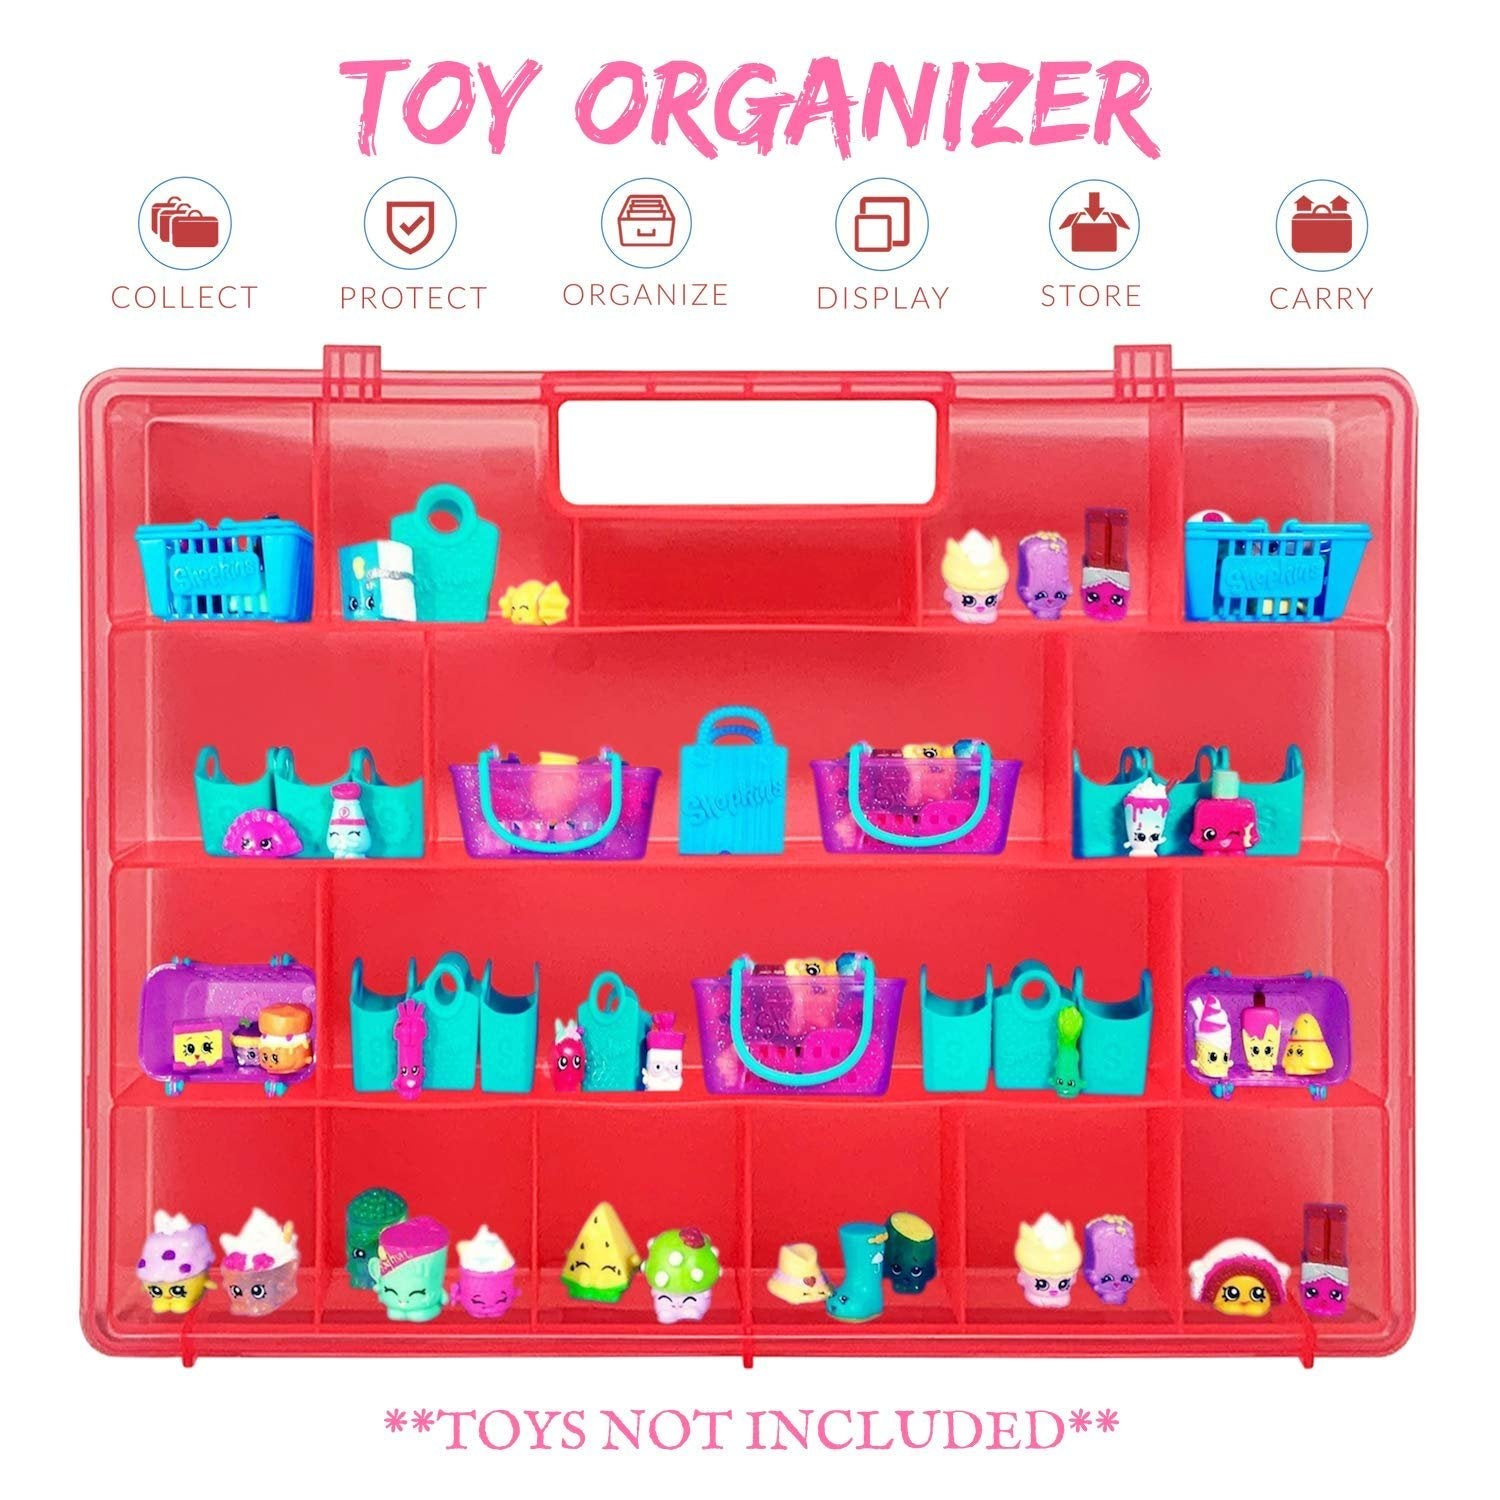 Life Made Better, Upgraded, Solid Toy Holder, Stronger Molded Kid-Friendly Handle, Easy and Fun Sorting & Storing, Compatible Carrying Case for Shopkins, Pink